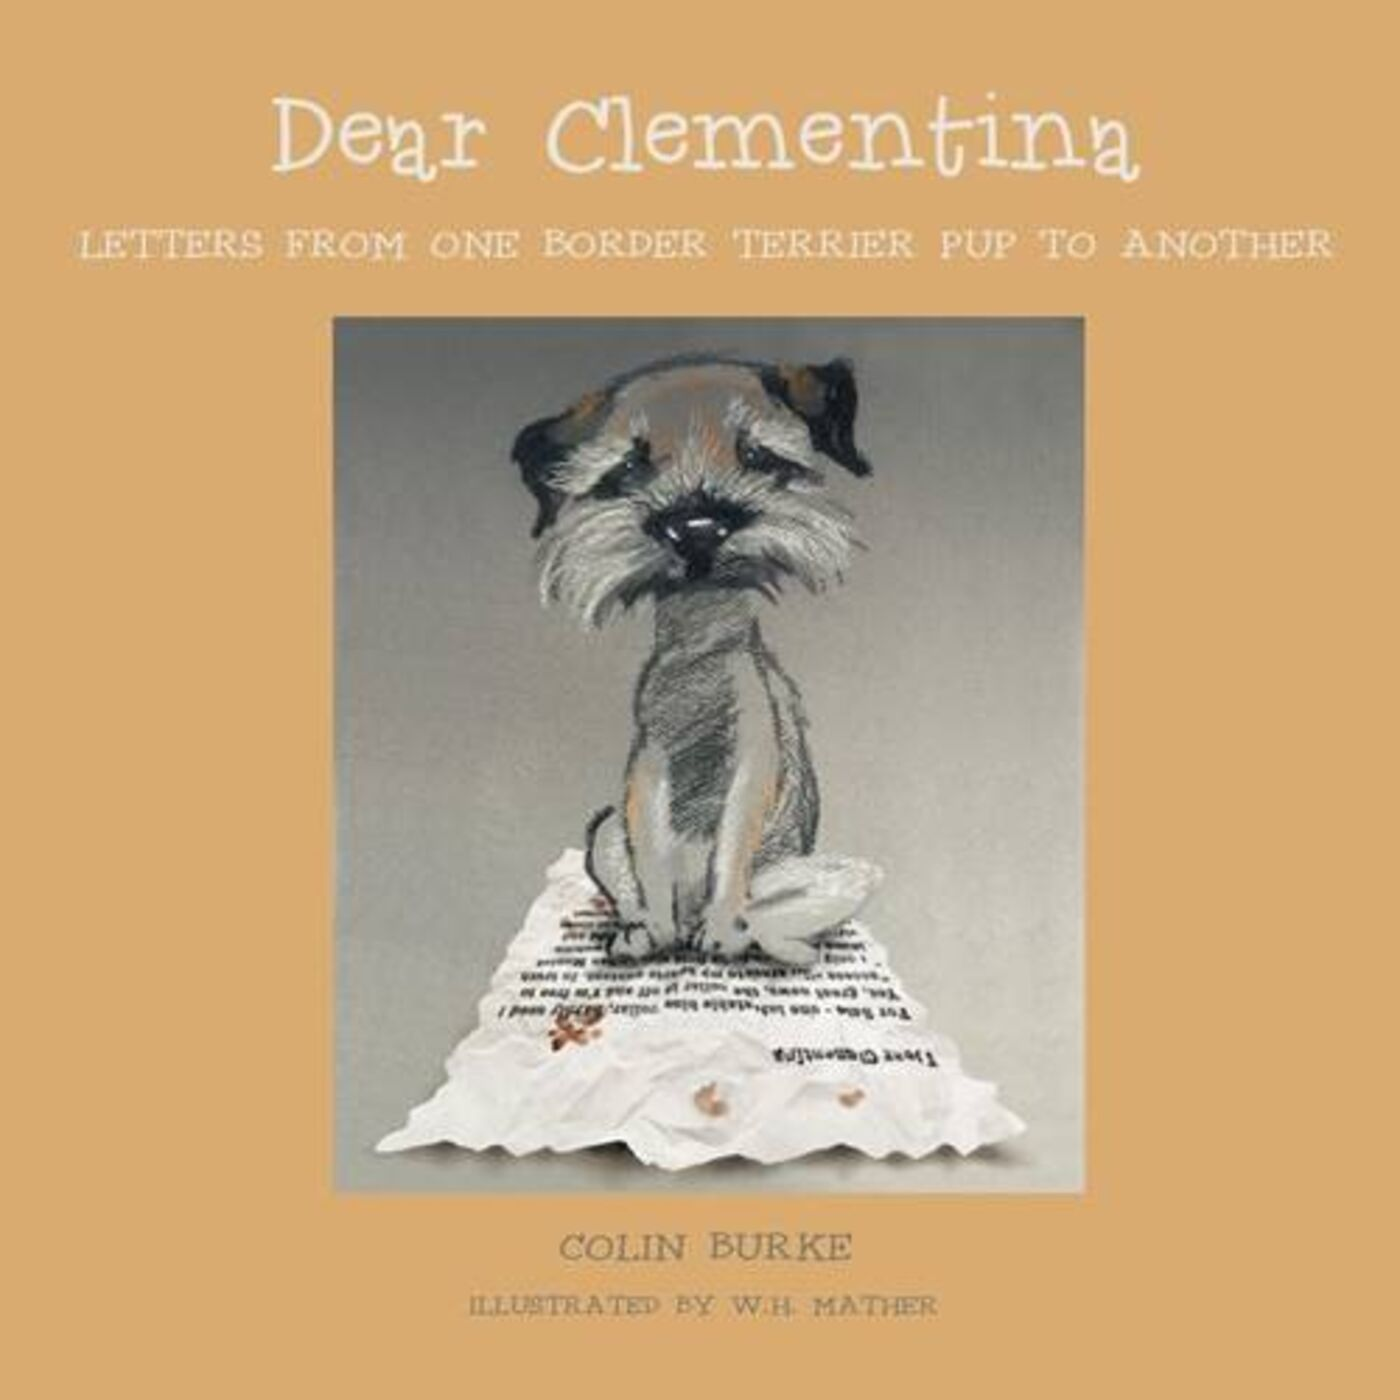 Dear Clementina Chapter 25 - Those Foxes Aren't Daft